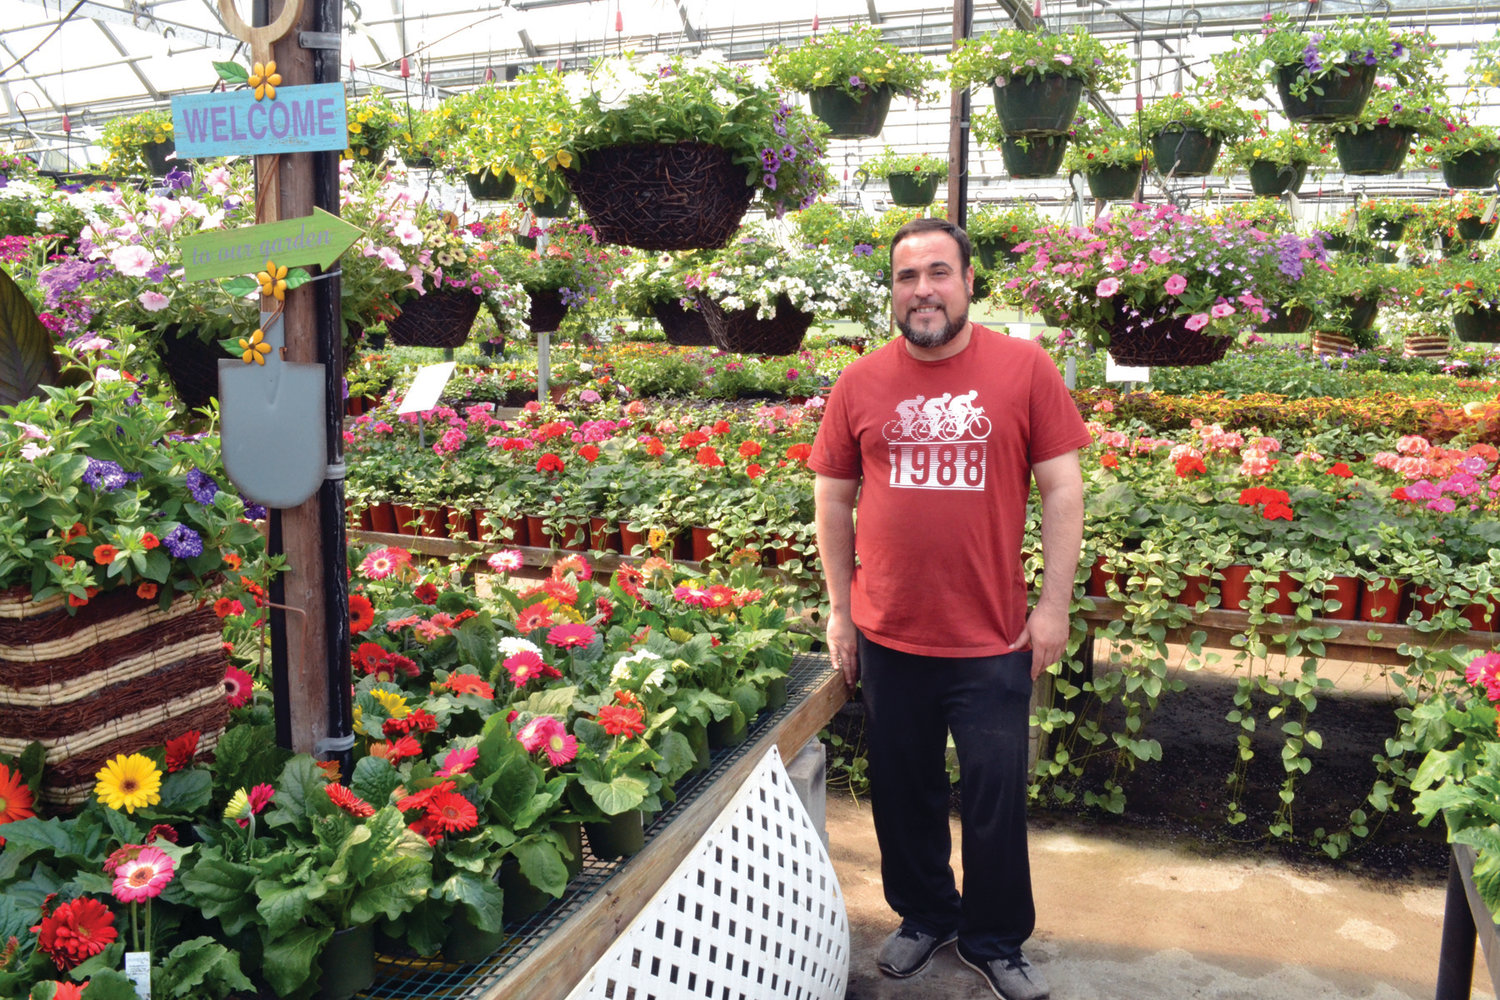 SUNSHINE IS HERE AGAIN: Atwood Greenhouses owner and operator Mike Macera said he is always happy to come to work early and see the vibrant colors in his greenhouses, but last Thursday was a special delight with spring-like temperatures and strong sunlight.